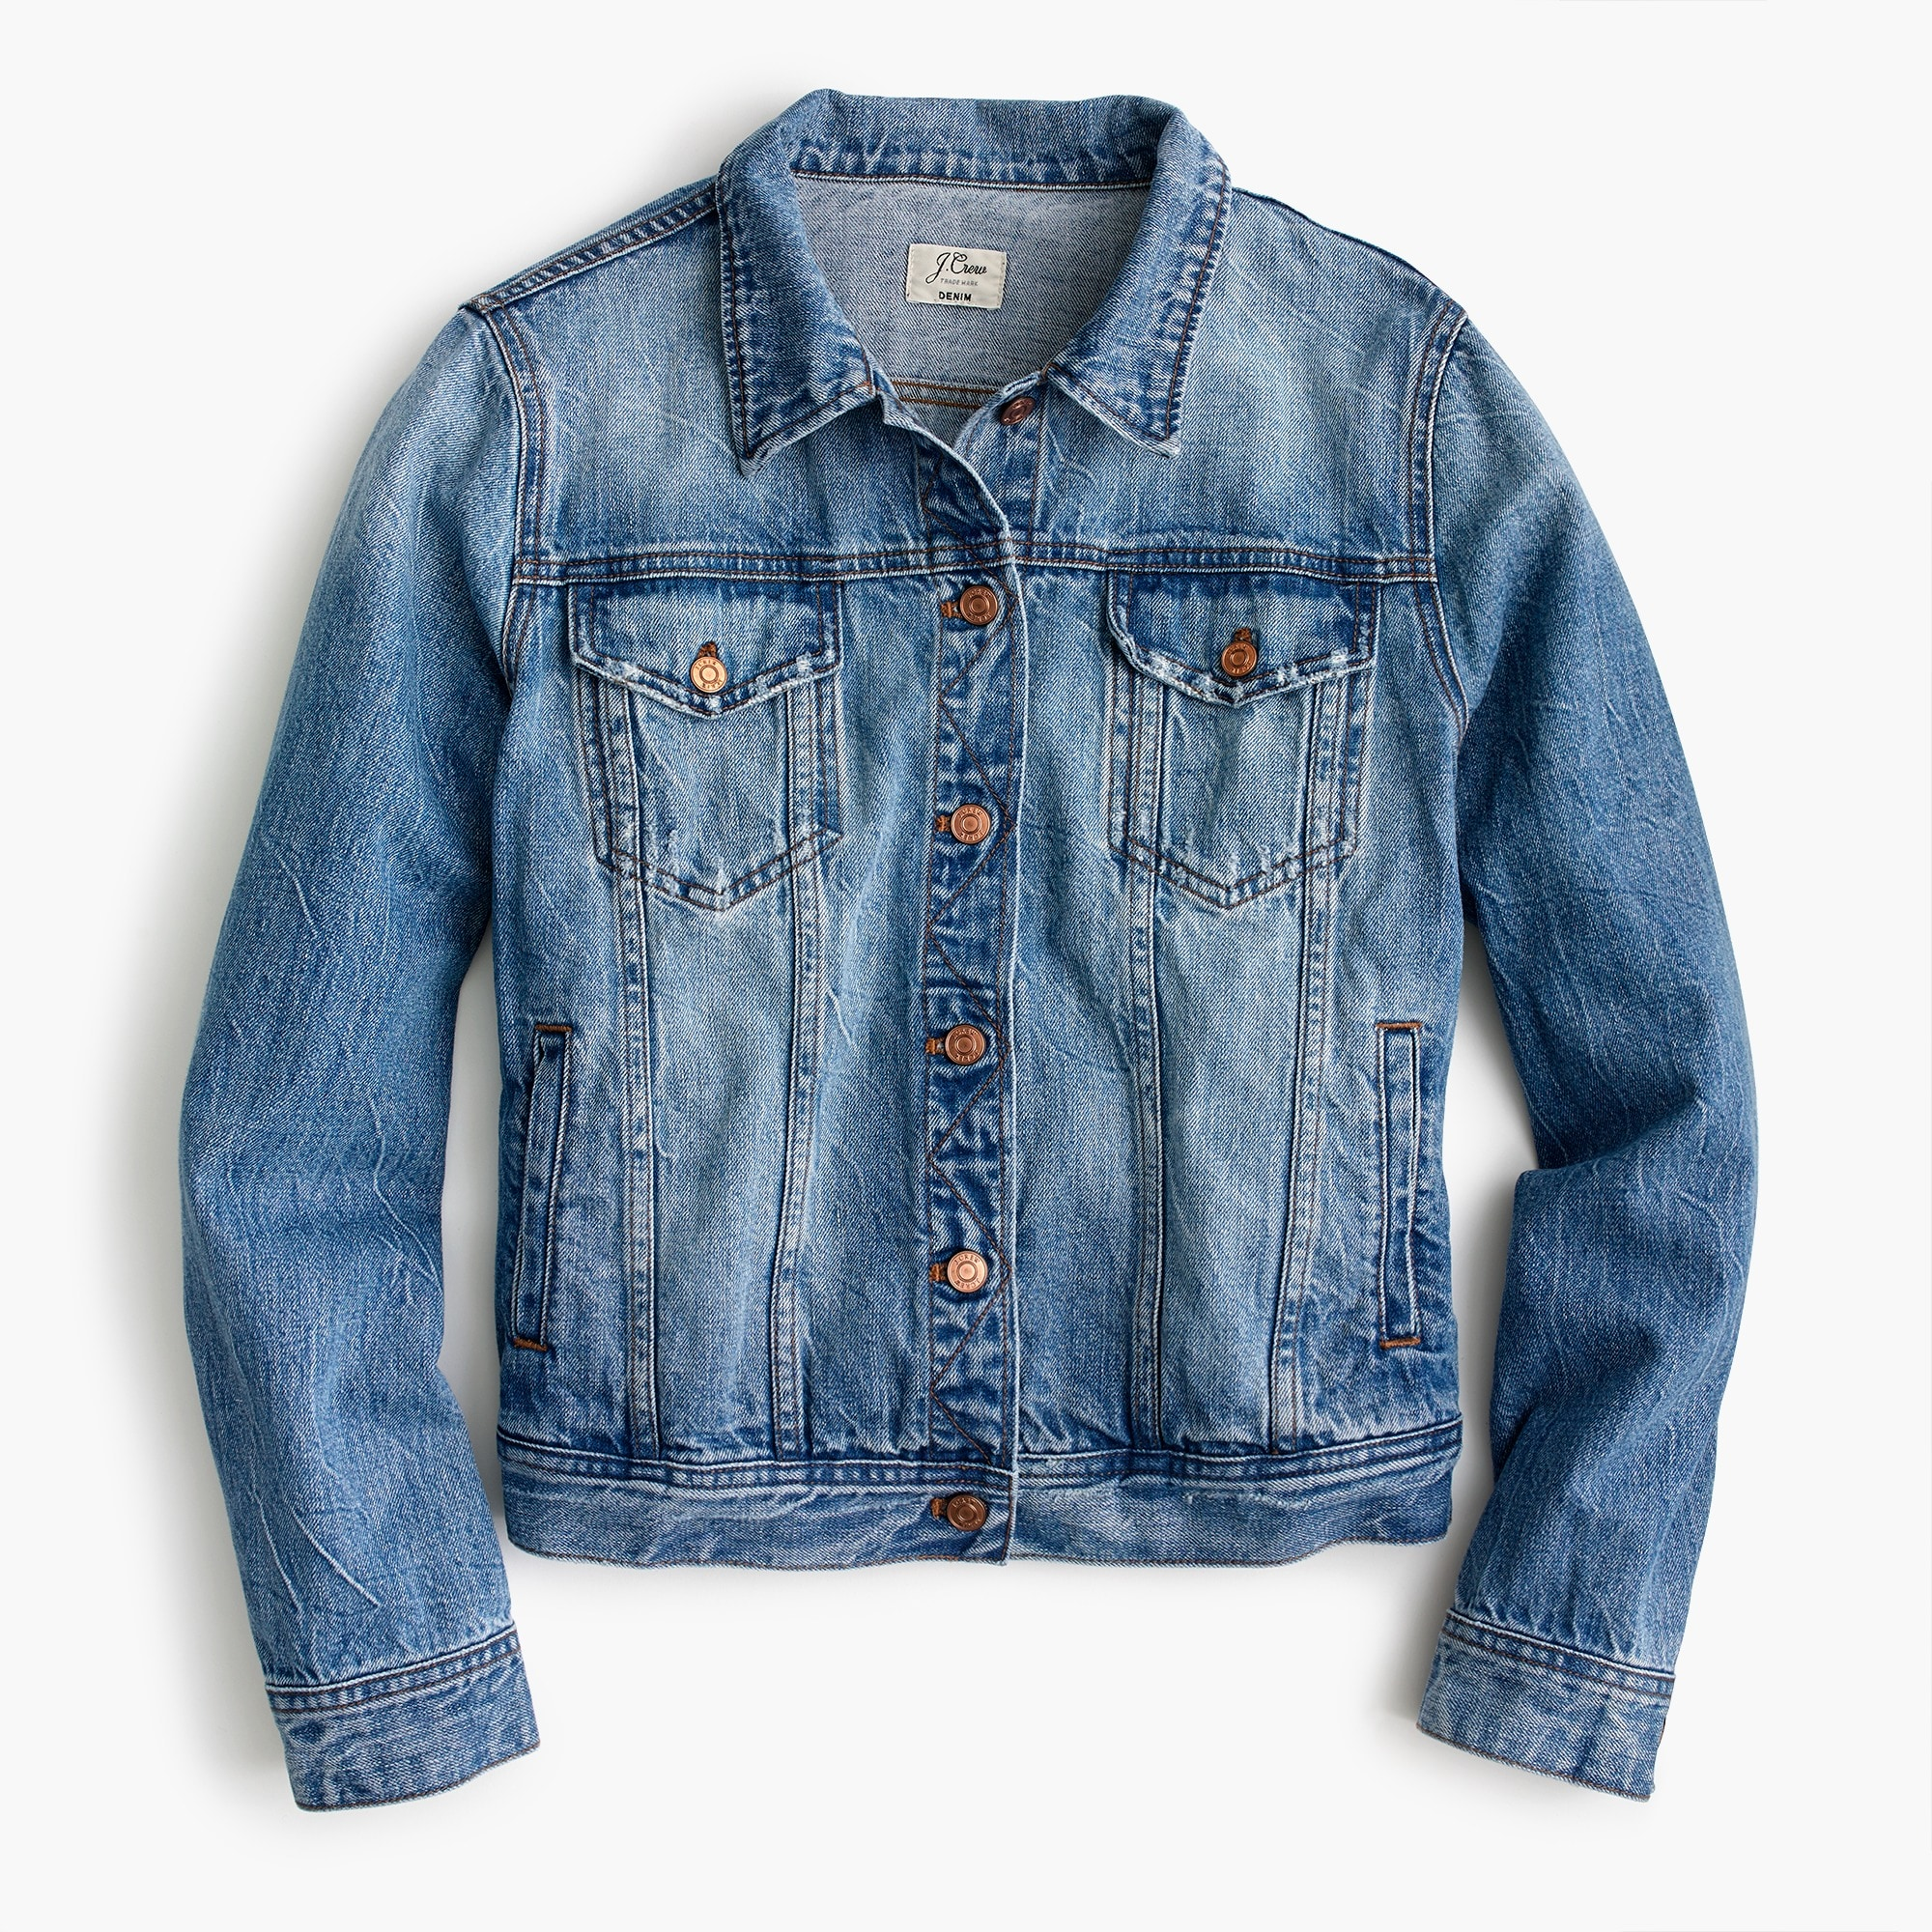 Image 2 for Petite classic denim jacket